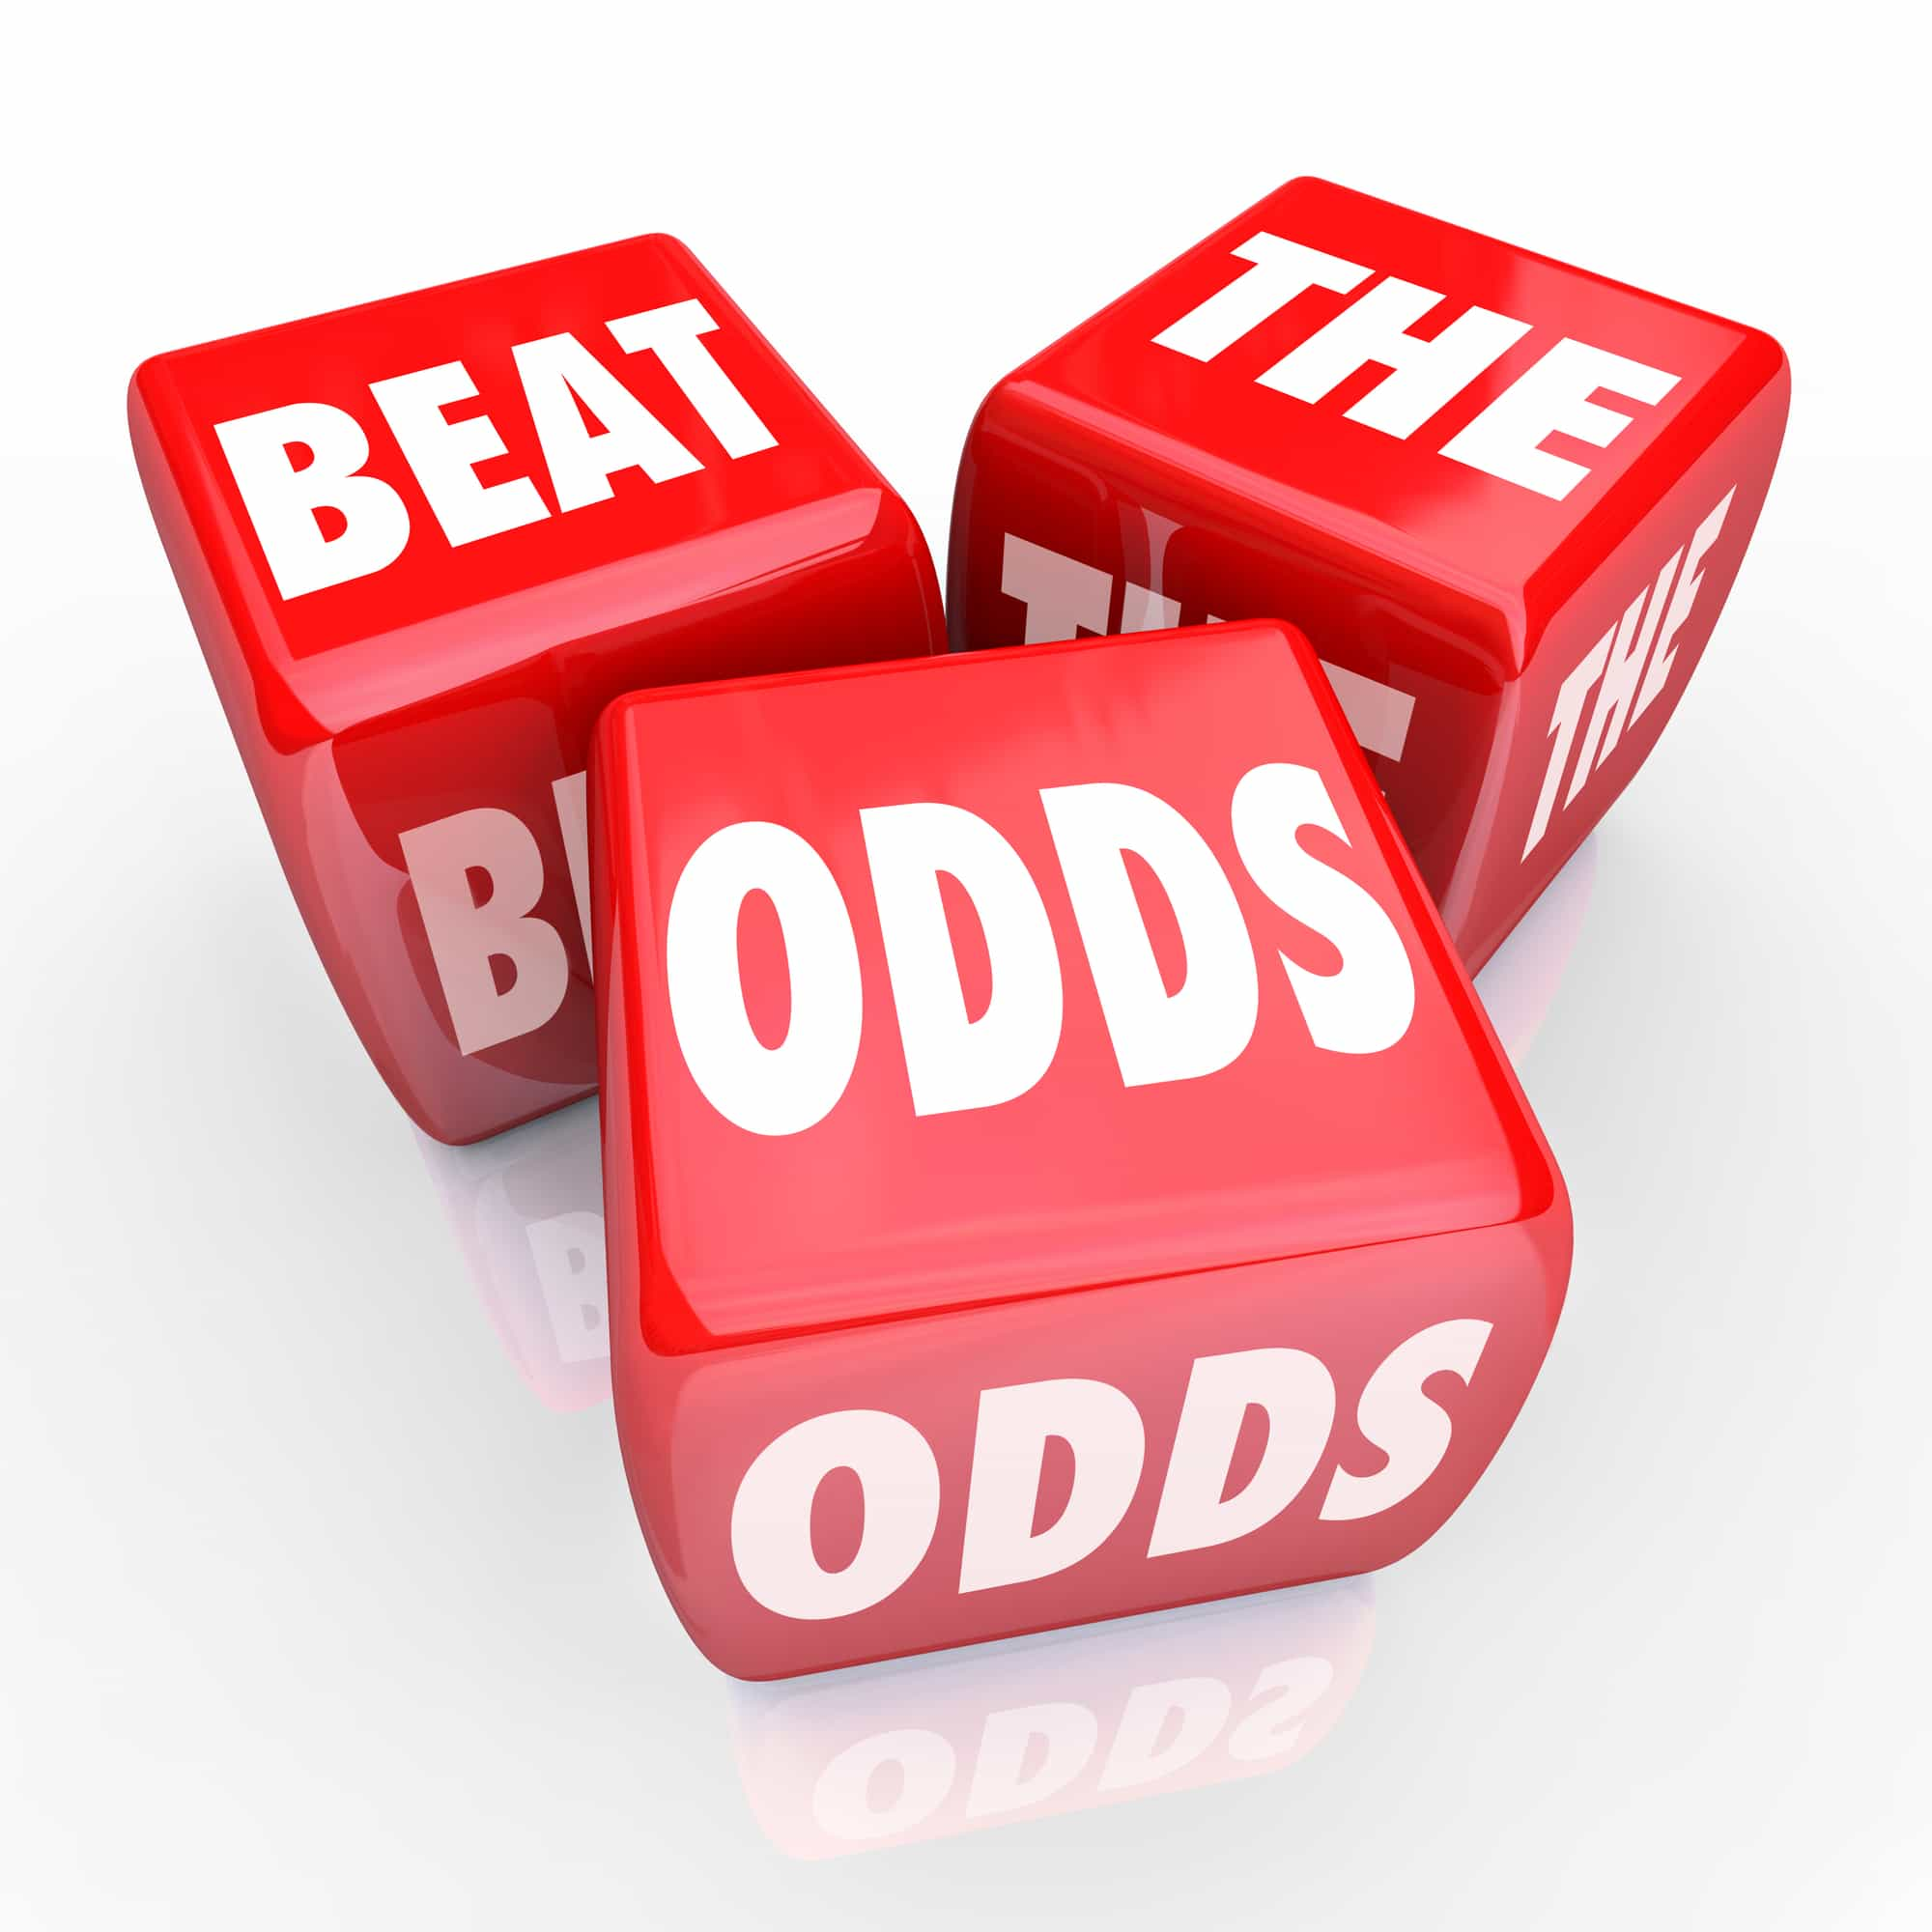 How to interpret Betting Odds like 2/4, 7/5, 11/2, 6/4